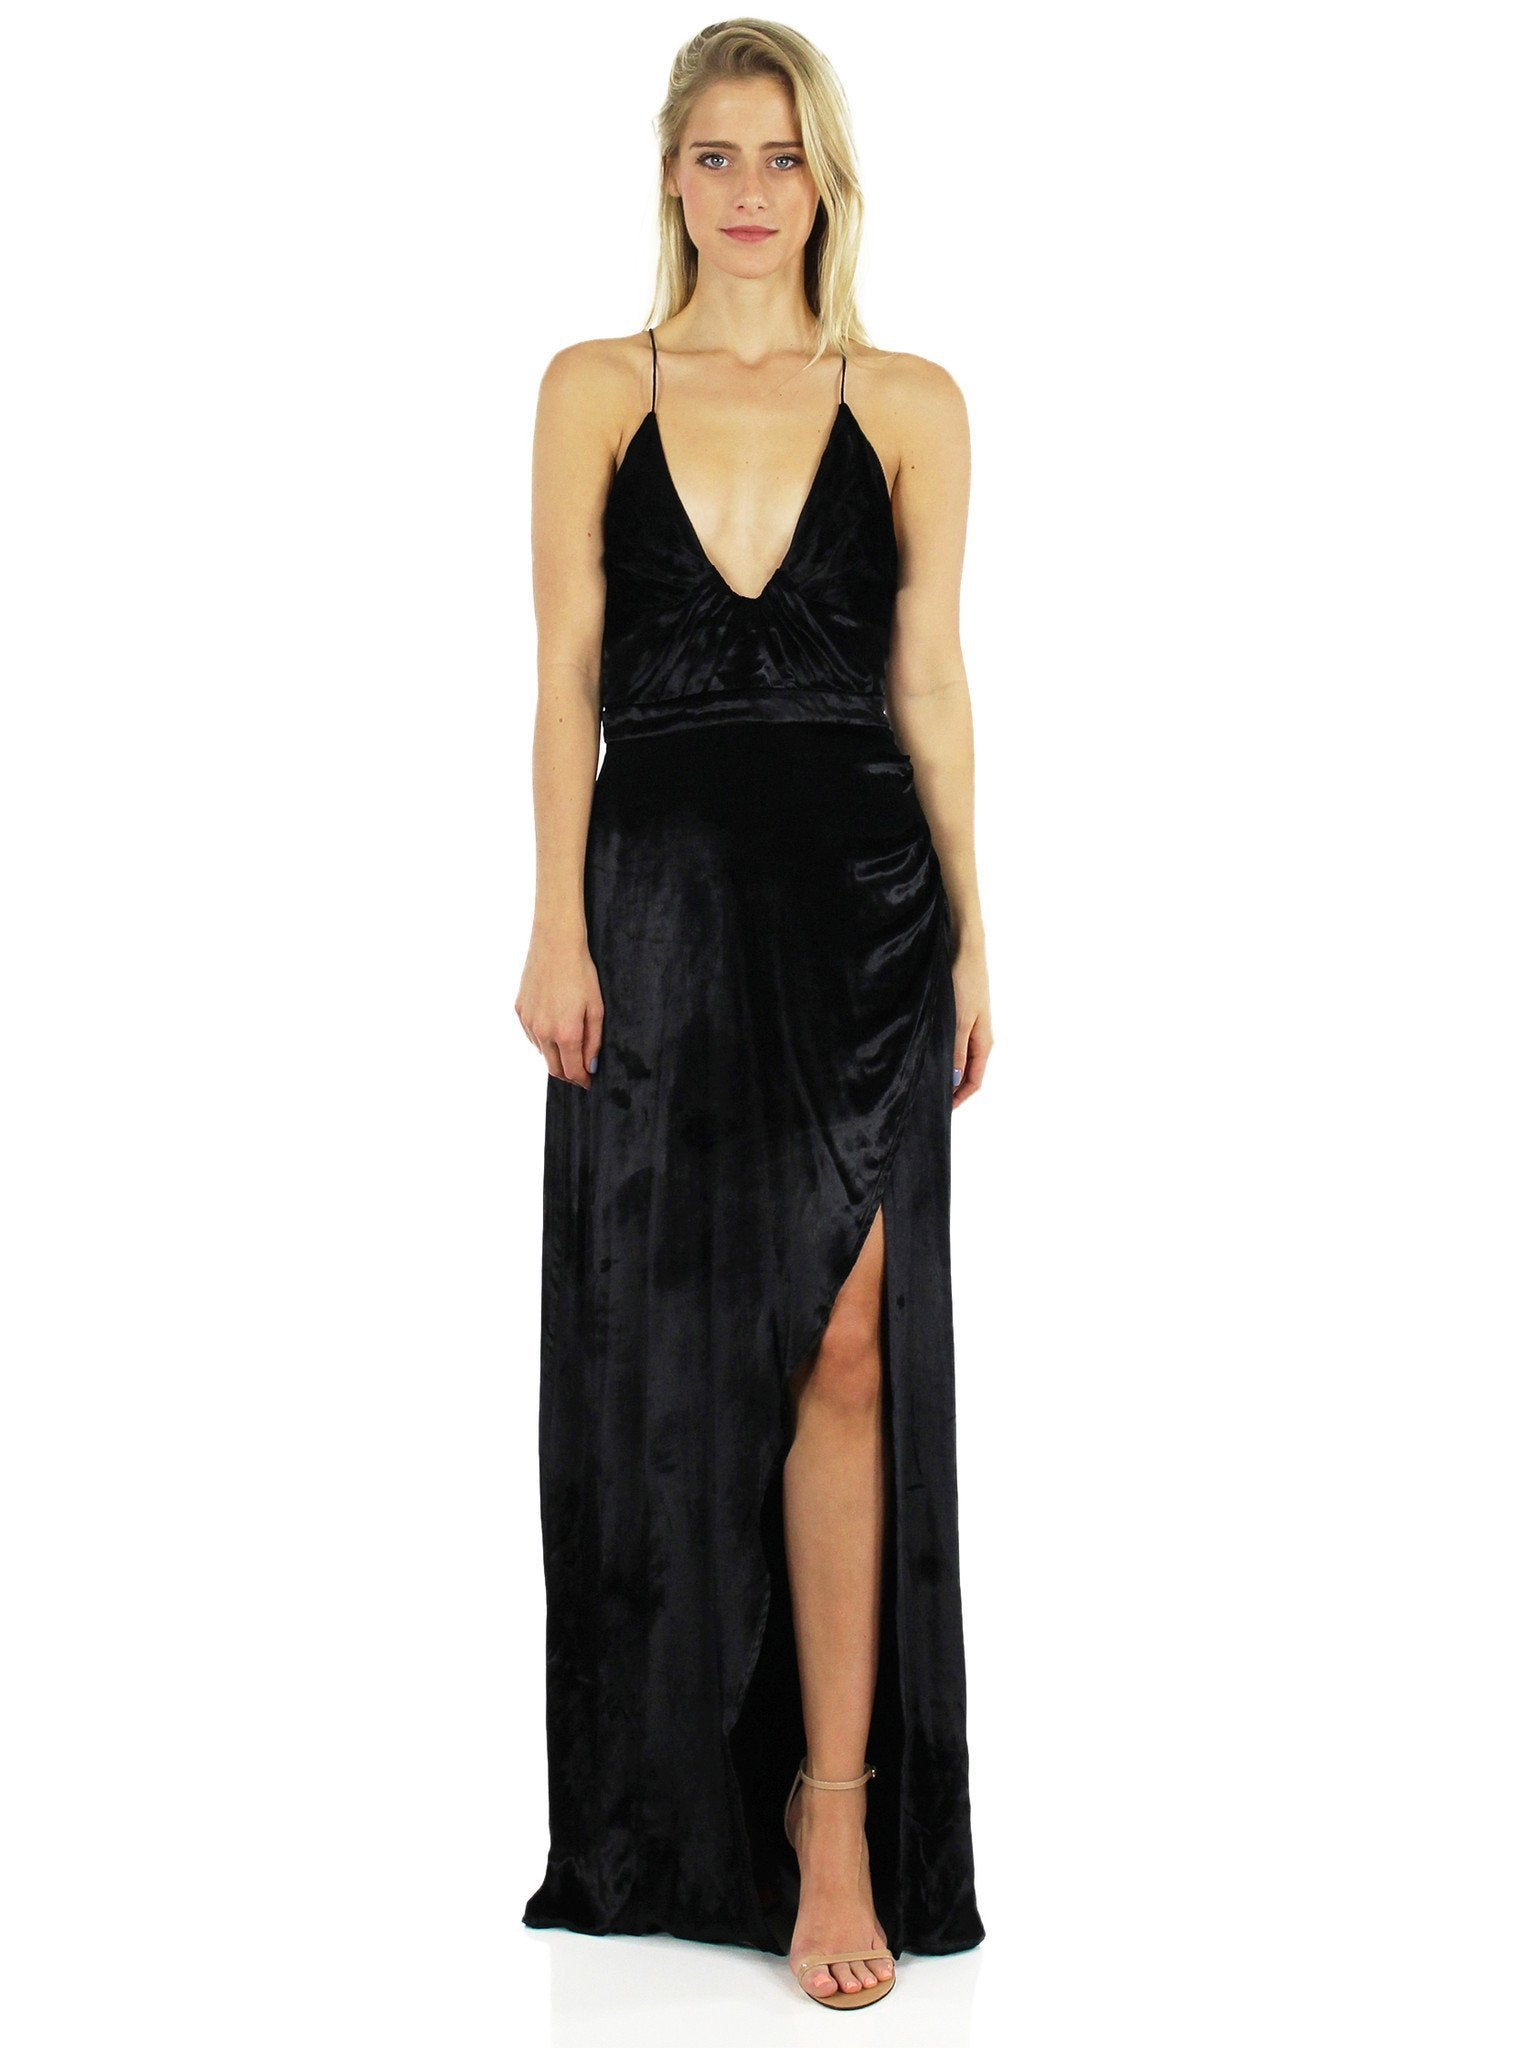 Women outfit in a dress rental from The Jetset Diaries called Velvet Saskia Maxi Dress